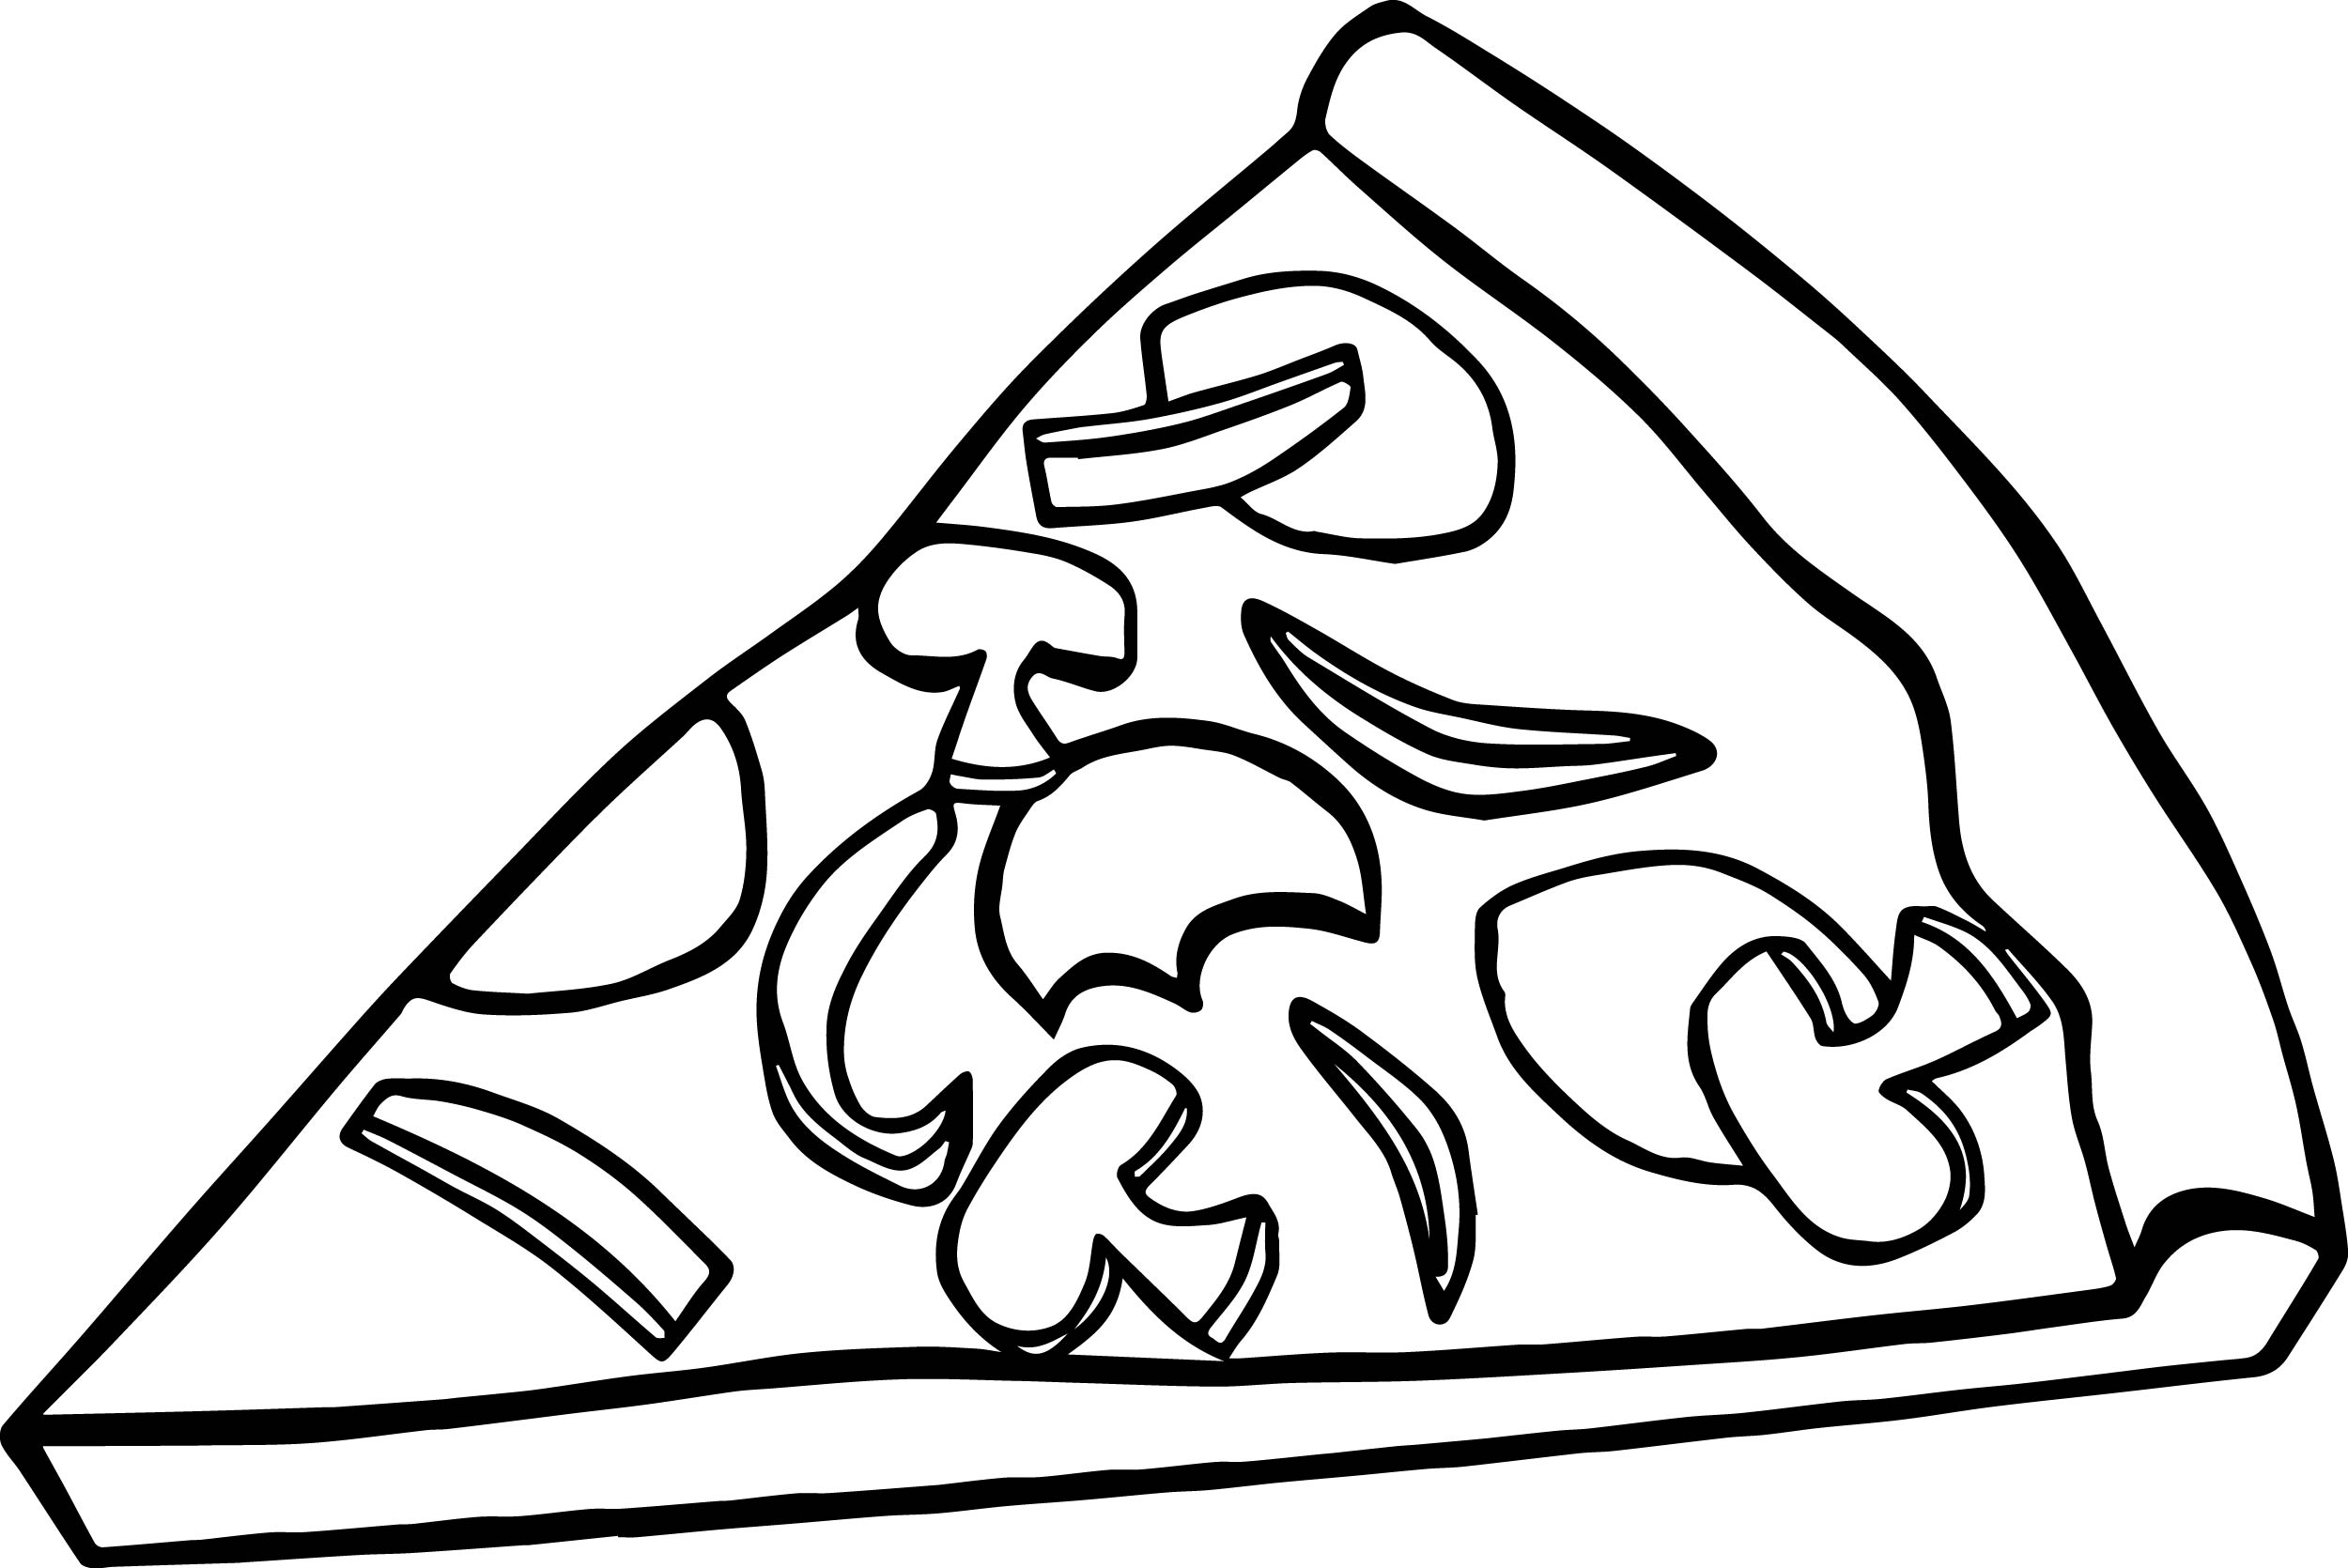 Pepperoni Pizza Slice Coloring Page | Wecoloringpage